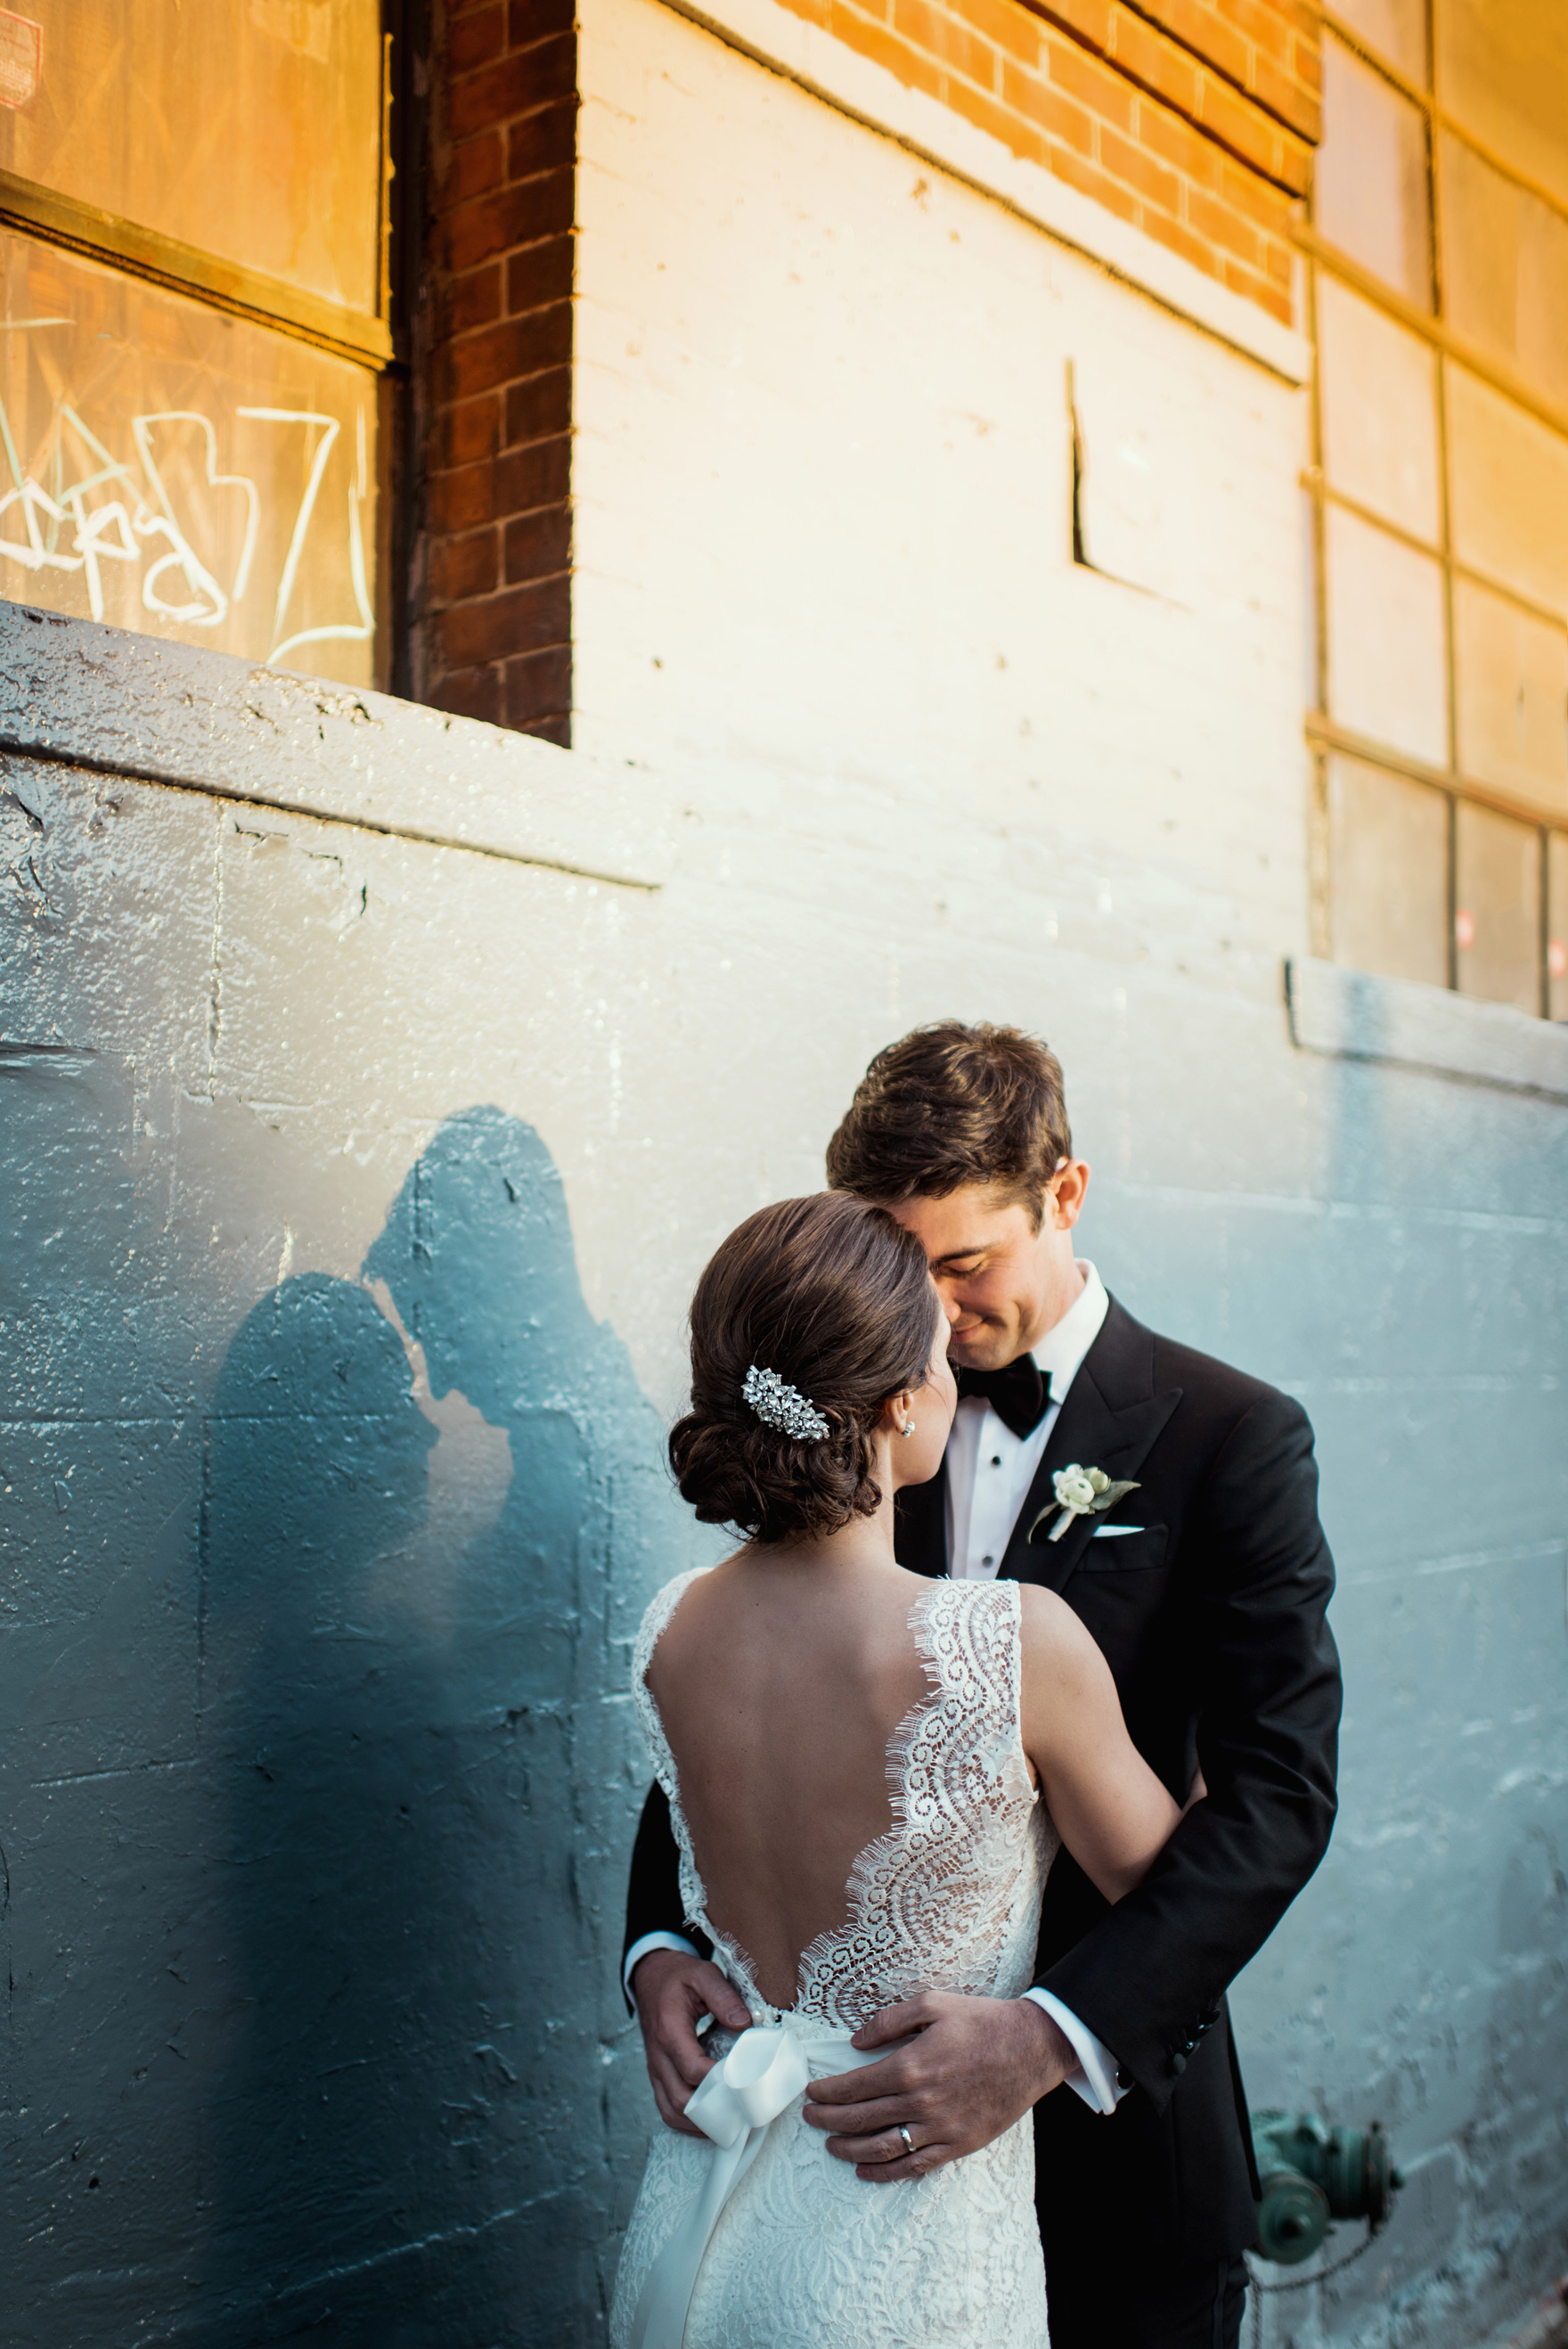 Williamsburg New York Fine Art Wedding by Christina Lilly Photography059